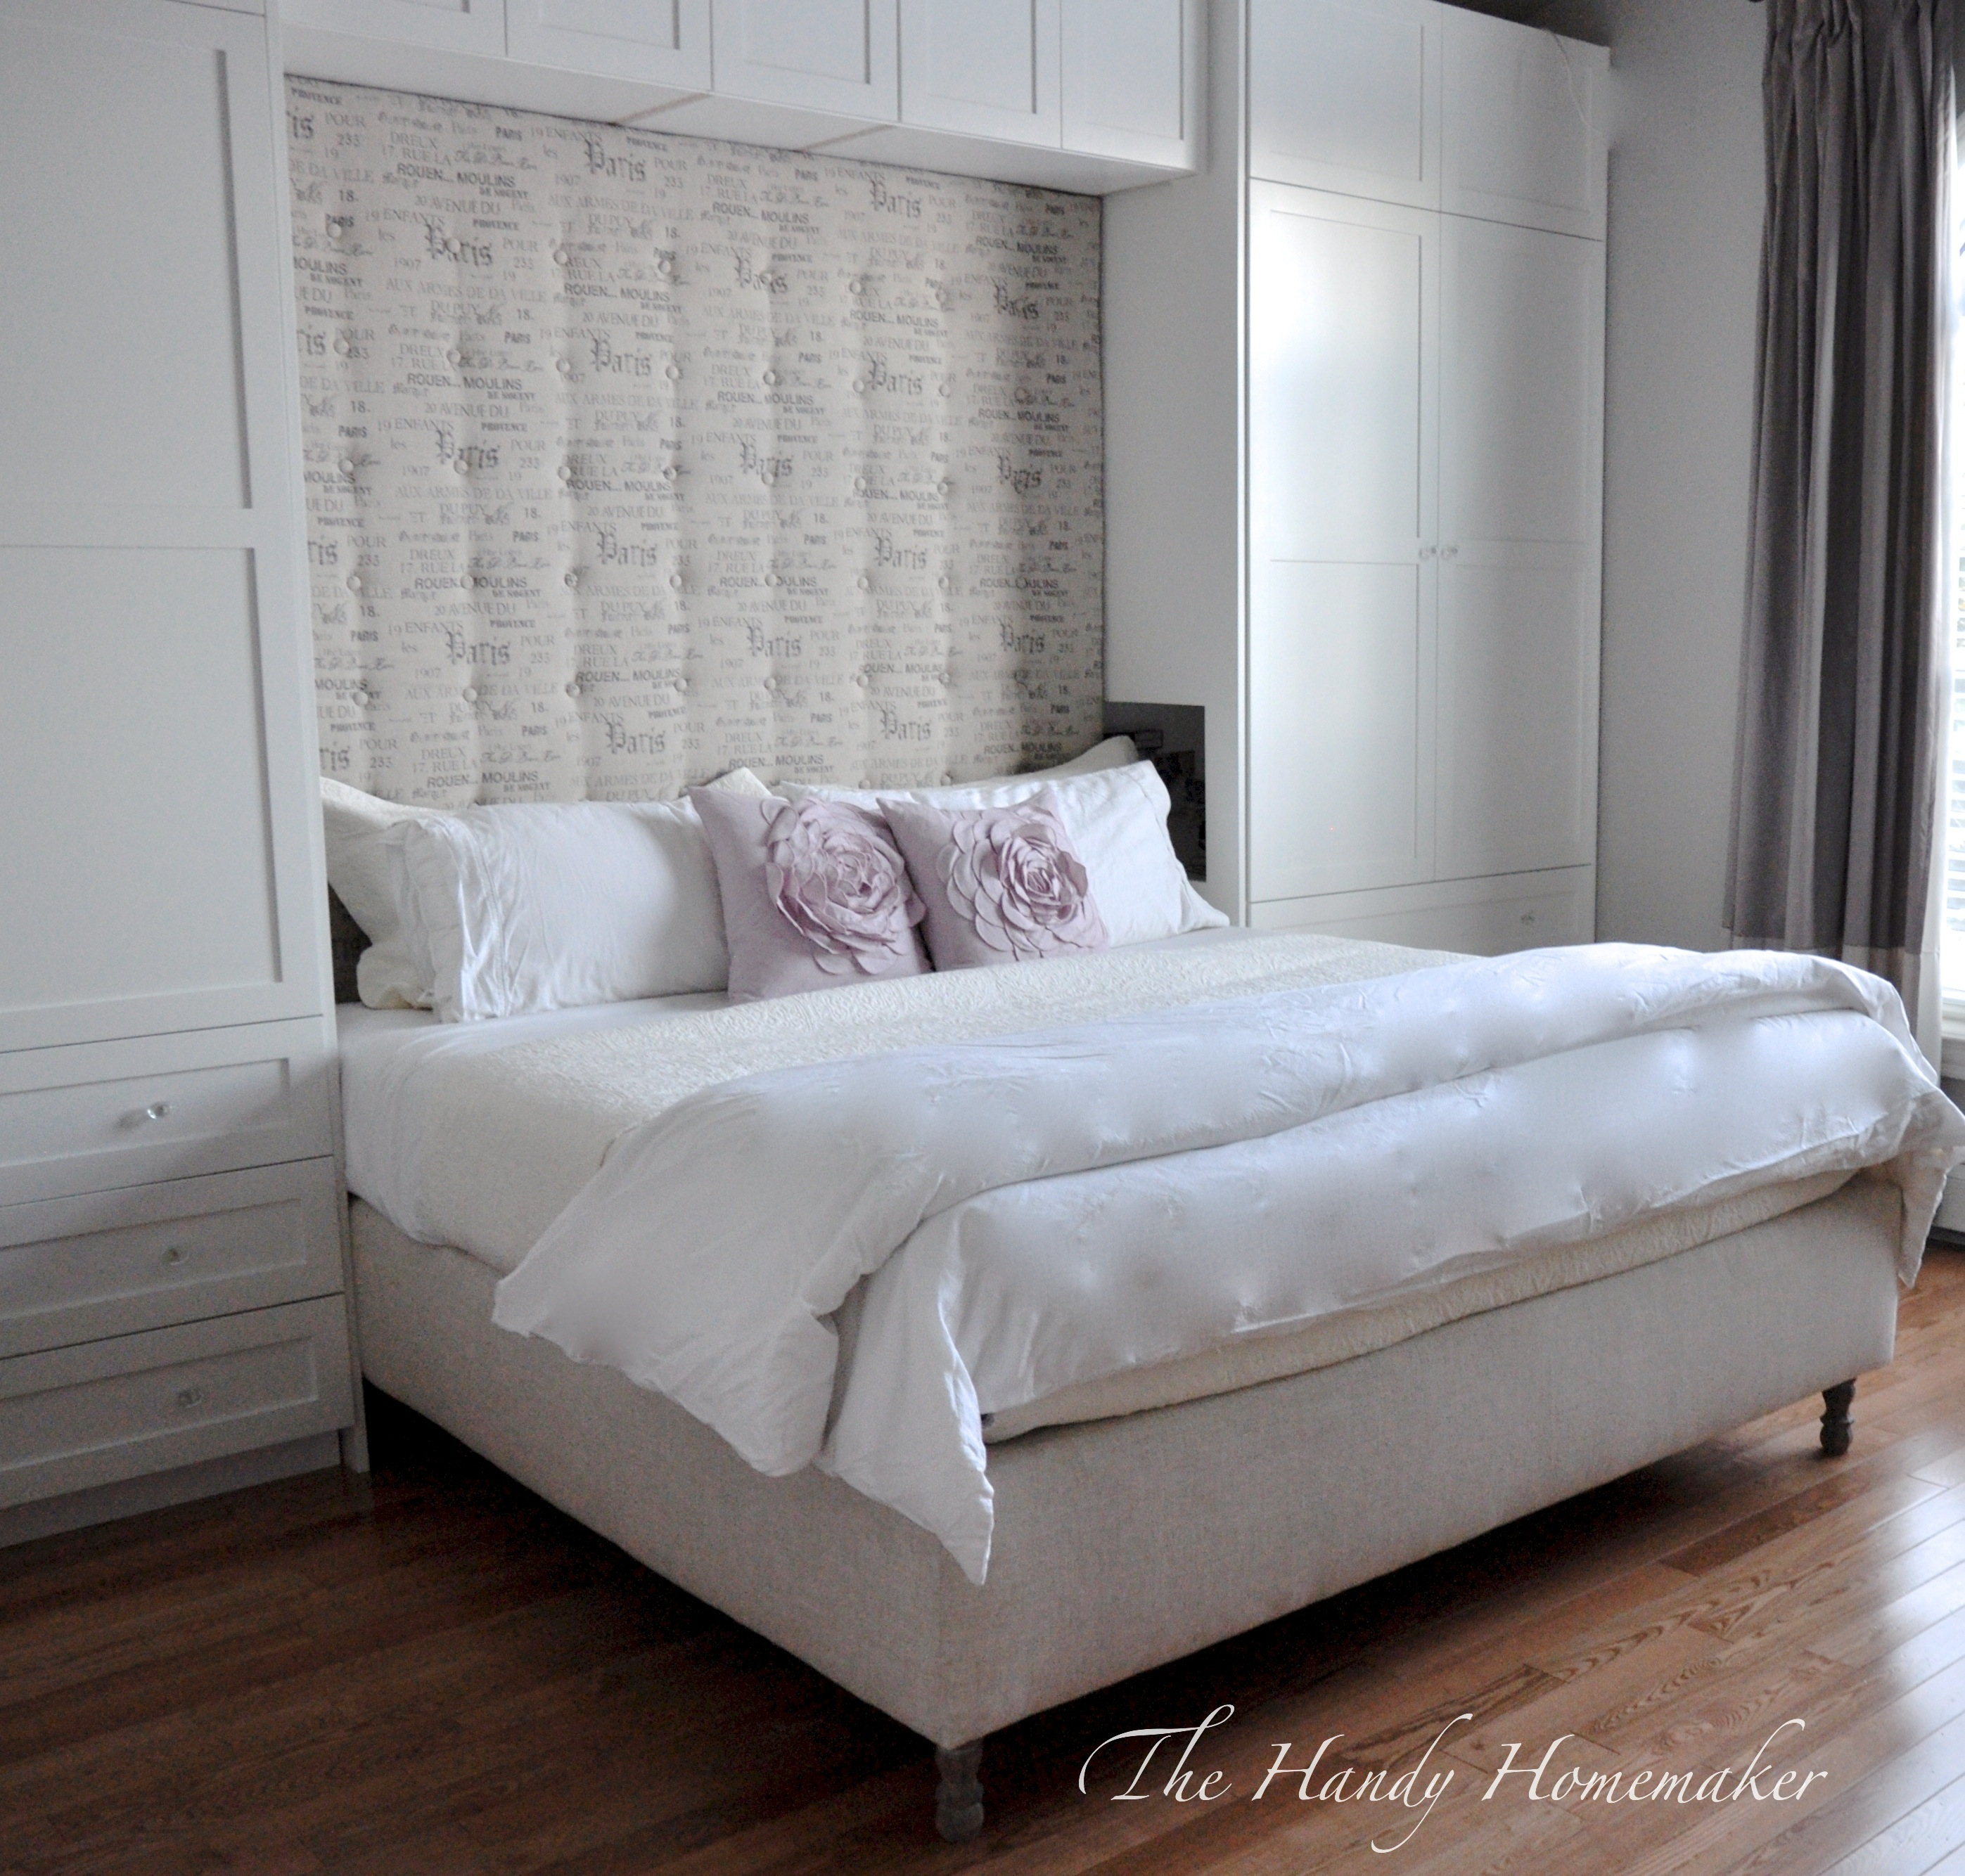 DIY Upholstered Headboard – THE HANDY HOMEMAKER